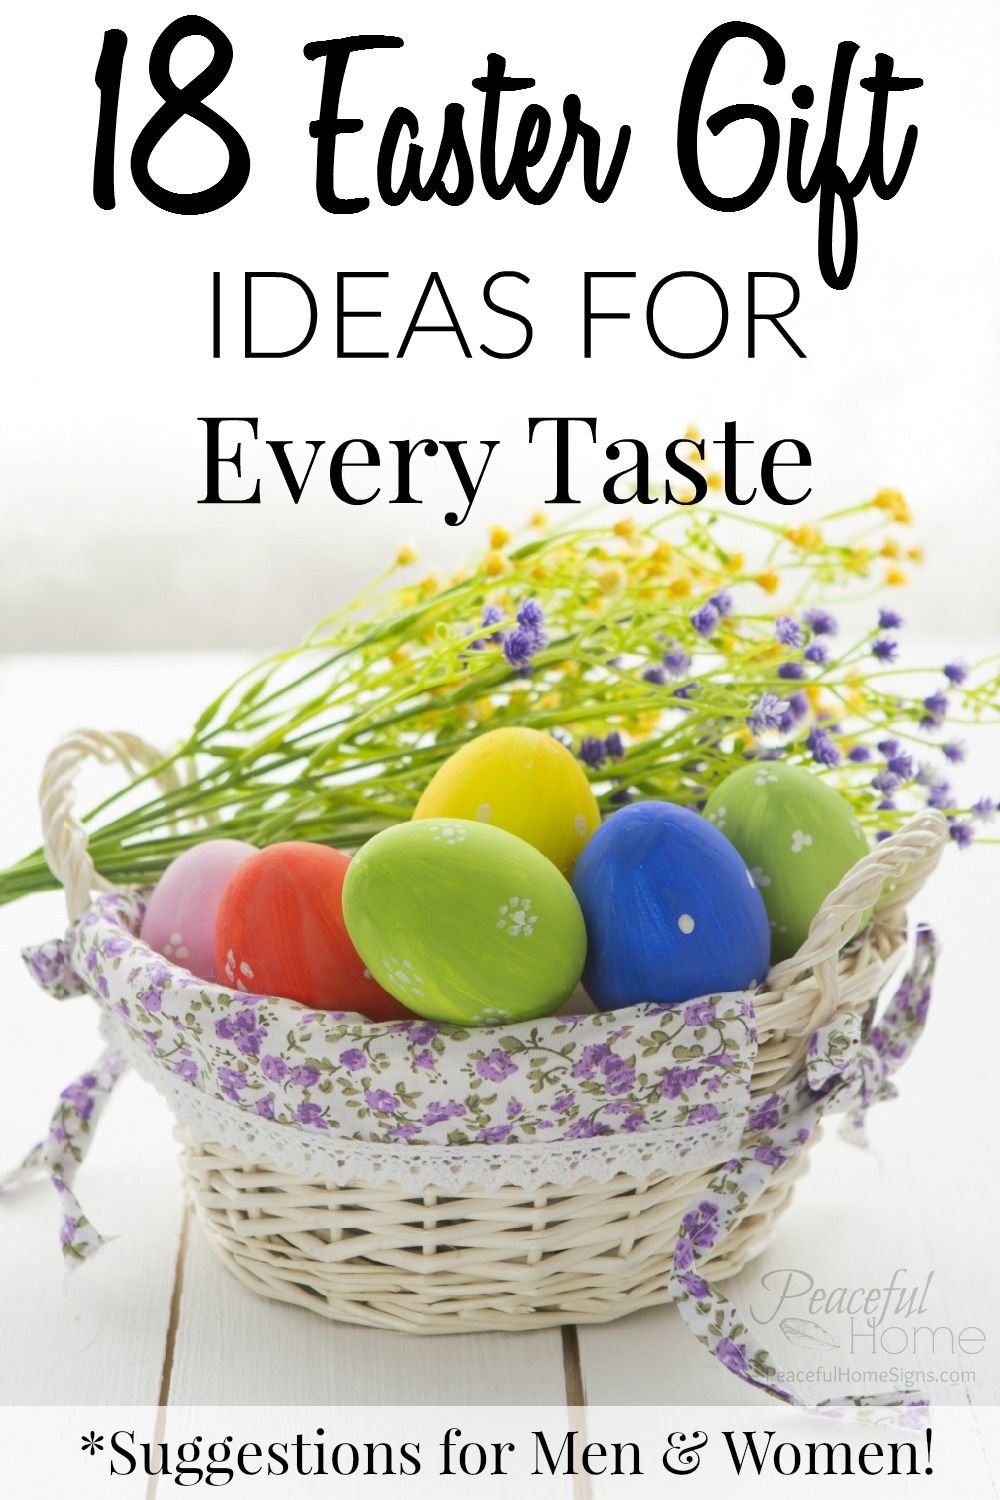 18 easter gift ideas for every taste men women gift suggestions easter gift ideas easter 2017 resurrection sunday gifts for him gifts for her unique gift ideas gift suggestions easter basket ideas negle Choice Image